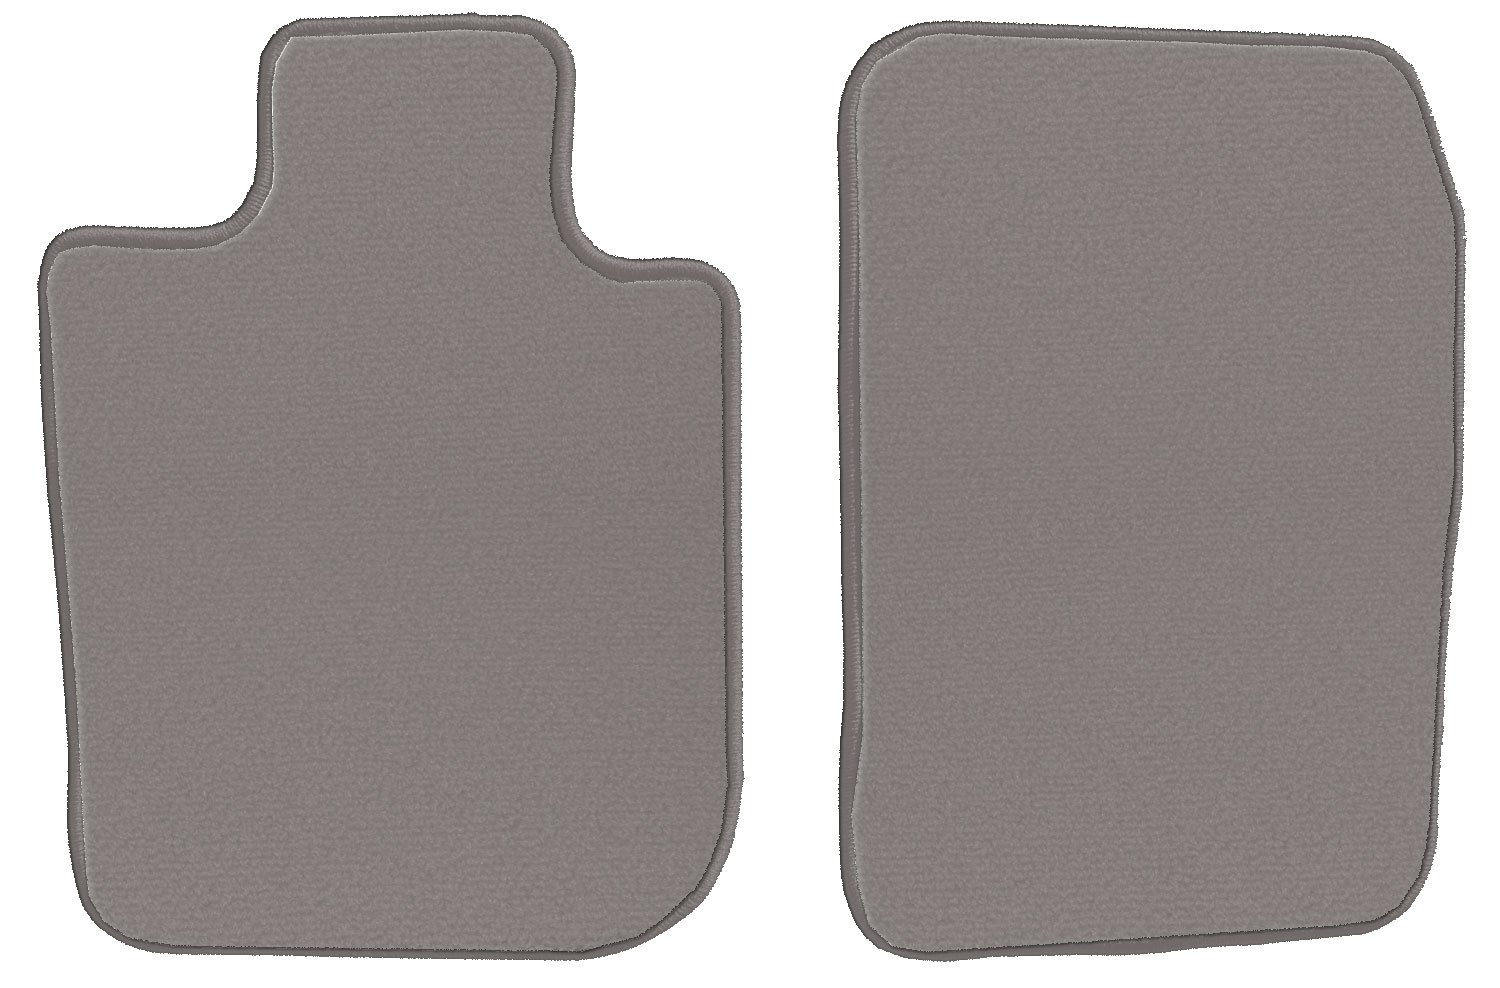 2014 2017 2015 2019 Cadillac ATS Sedan Grey Loop Driver /& Passenger Floor GGBAILEY D50542-F1A-GY-LP Custom Fit Car Mats for 2013 2016 2018